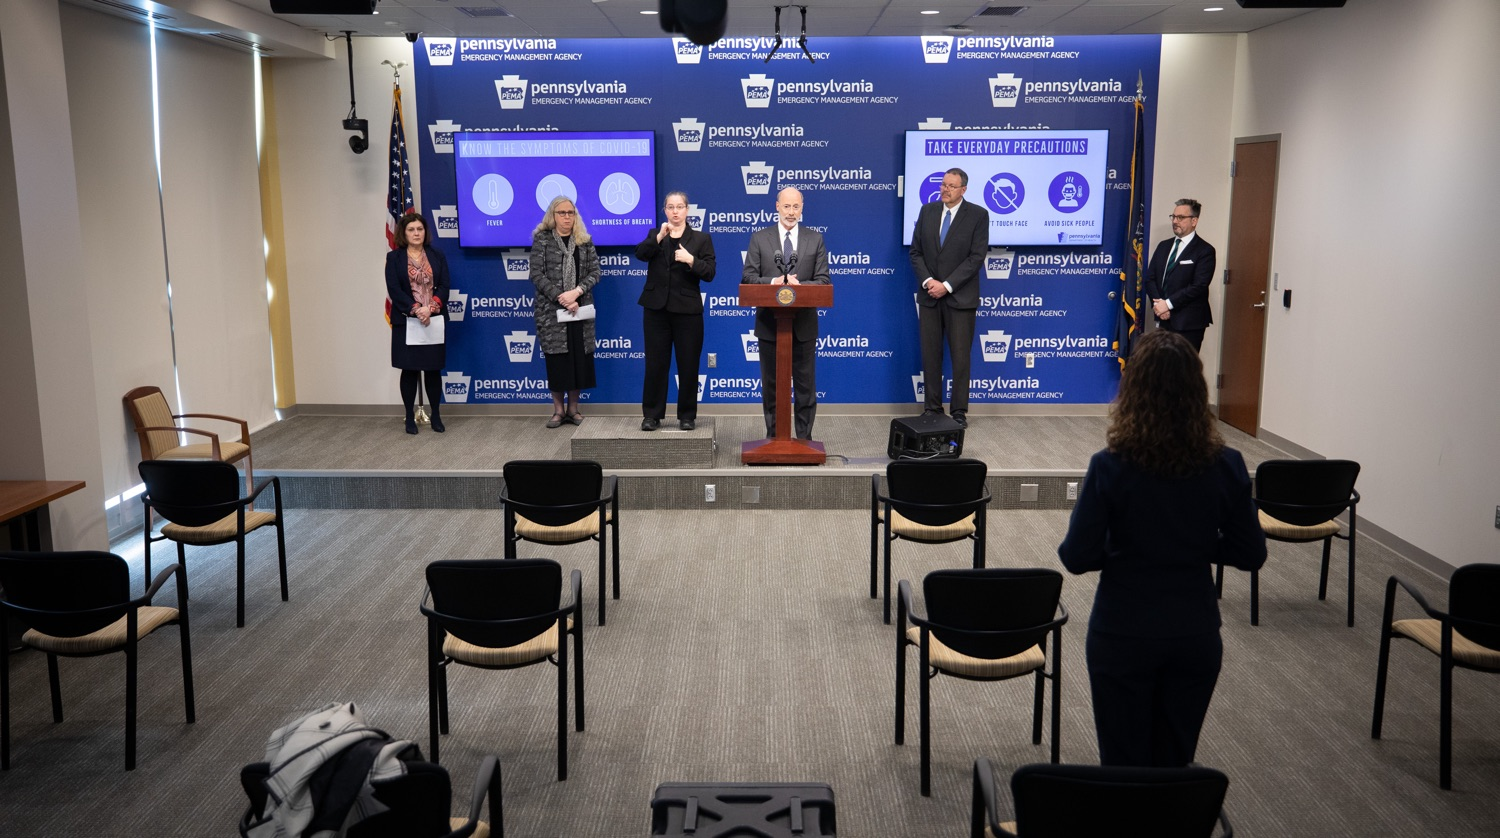 """<a href=""""https://filesource.wostreaming.net/commonwealthofpa/photo/17888_gov_covid19_update_dz_0012.jpg"""" target=""""_blank"""">⇣Download Photo<br></a>Governor Tom Wolf  answers questions submitted by reporters at a virtual press conference. Governor Tom Wolf and Secretary of Health Dr. Rachel Levine provided an update on the coronavirus known as COVID-19 and outline ongoing efforts to mitigate the virus in Pennsylvania. The Department of Health anticipates that there will be more Pennsylvanians who test positive for COVID-19 in the coming days and weeks and it is important for residents to know the commonwealth is prepared and to be prepared themselves. People have a higher chance of testing positive for COVID-19 if they have traveled to a country or state with known community outbreaks or have come in contact with someone who has the virus. The Wolf Administration is working with the health care community across Pennsylvania to keep them informed, consult on patient testing, and ensure they have the resources they need to care for patients. .March 16, 2020  Harrisburg Pa."""